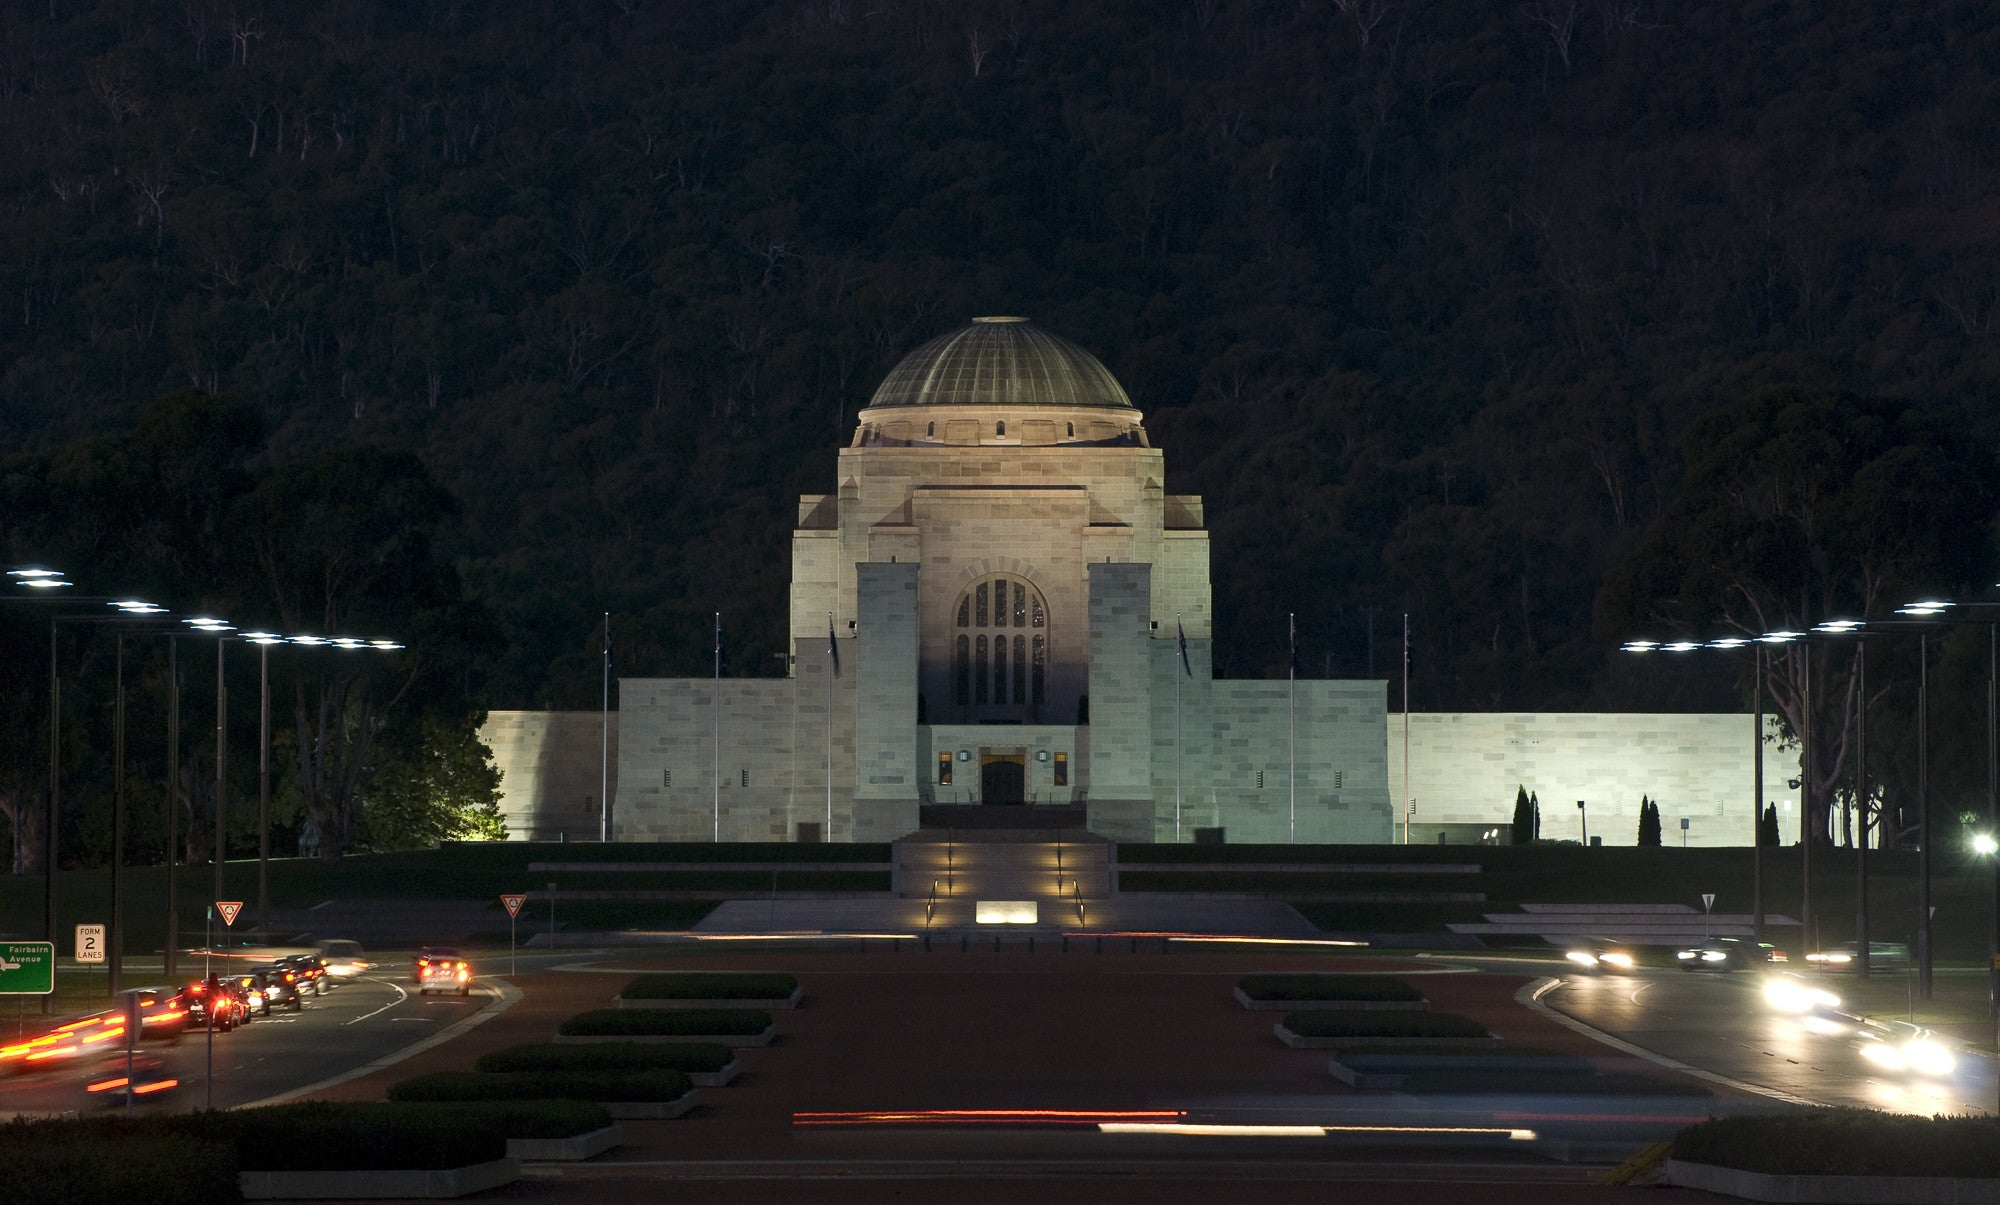 australian war memorial essay The australian war memorial is australia's national memorial to the members of  its armed forces and supporting organisations who have died or participated in.